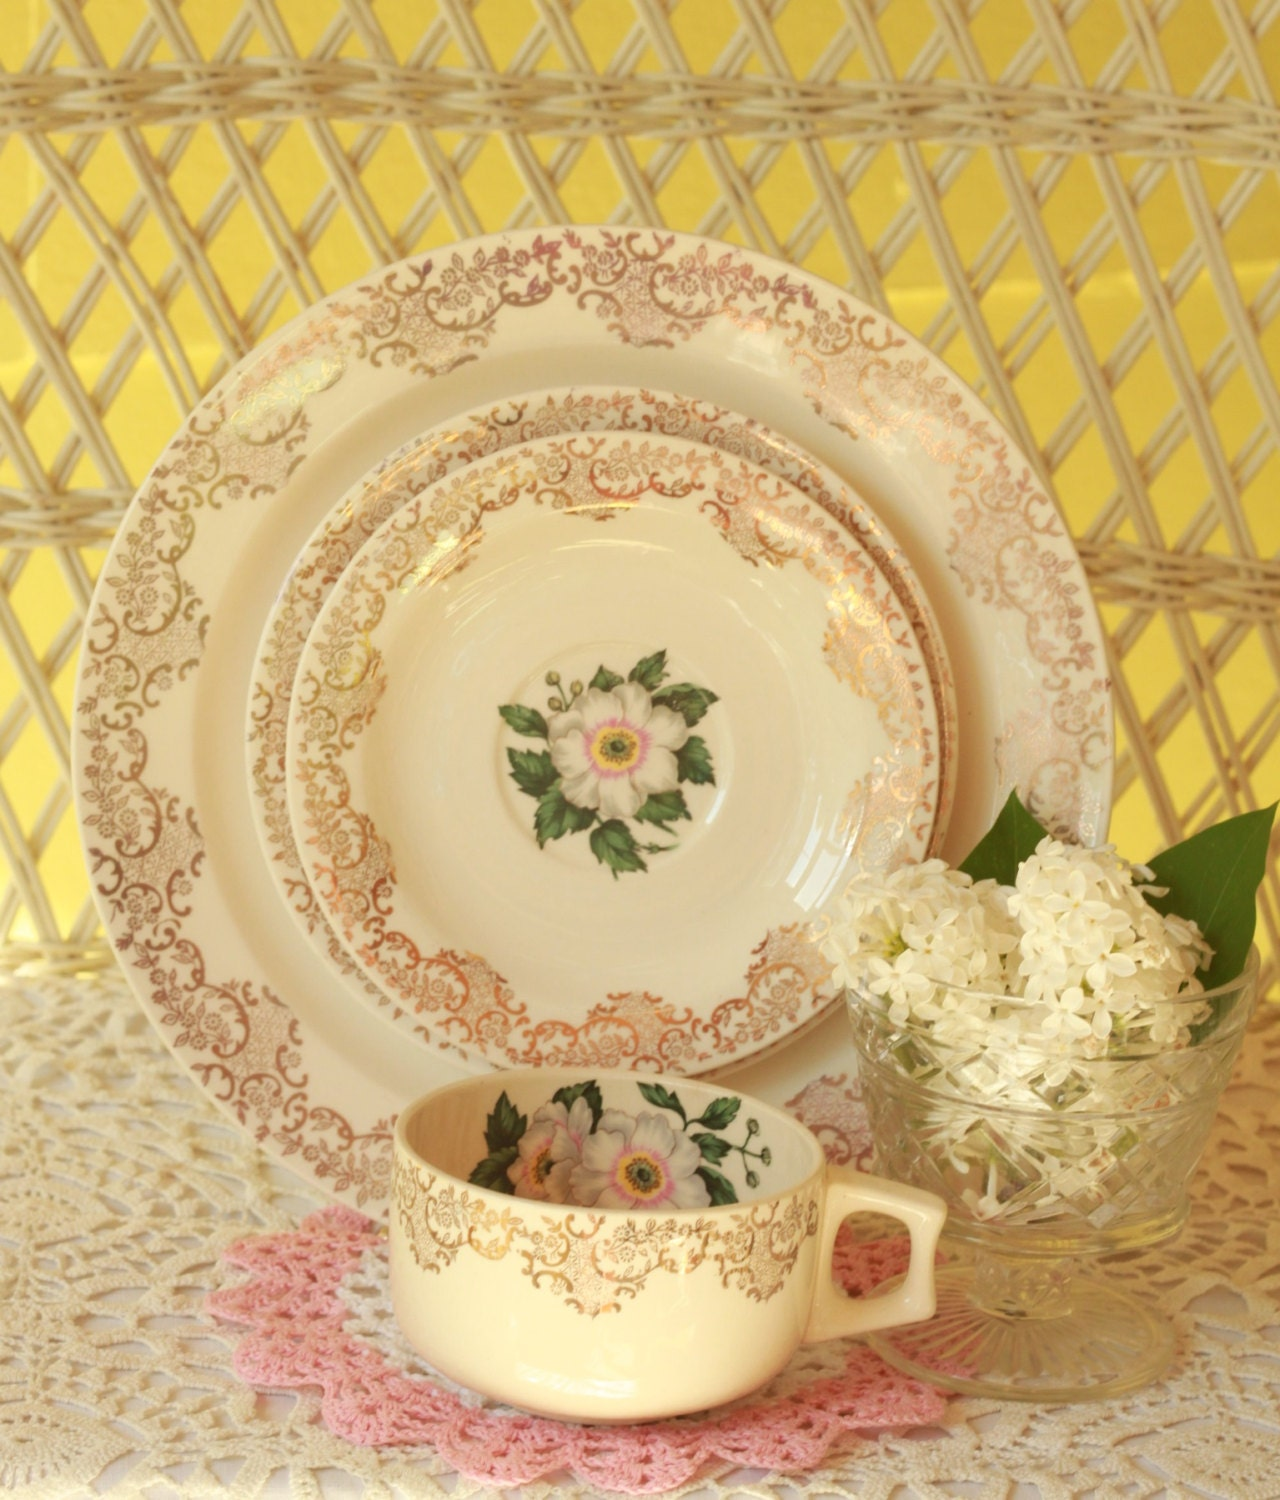 vintage china dinnerware gold trimmed dishes antique dishes